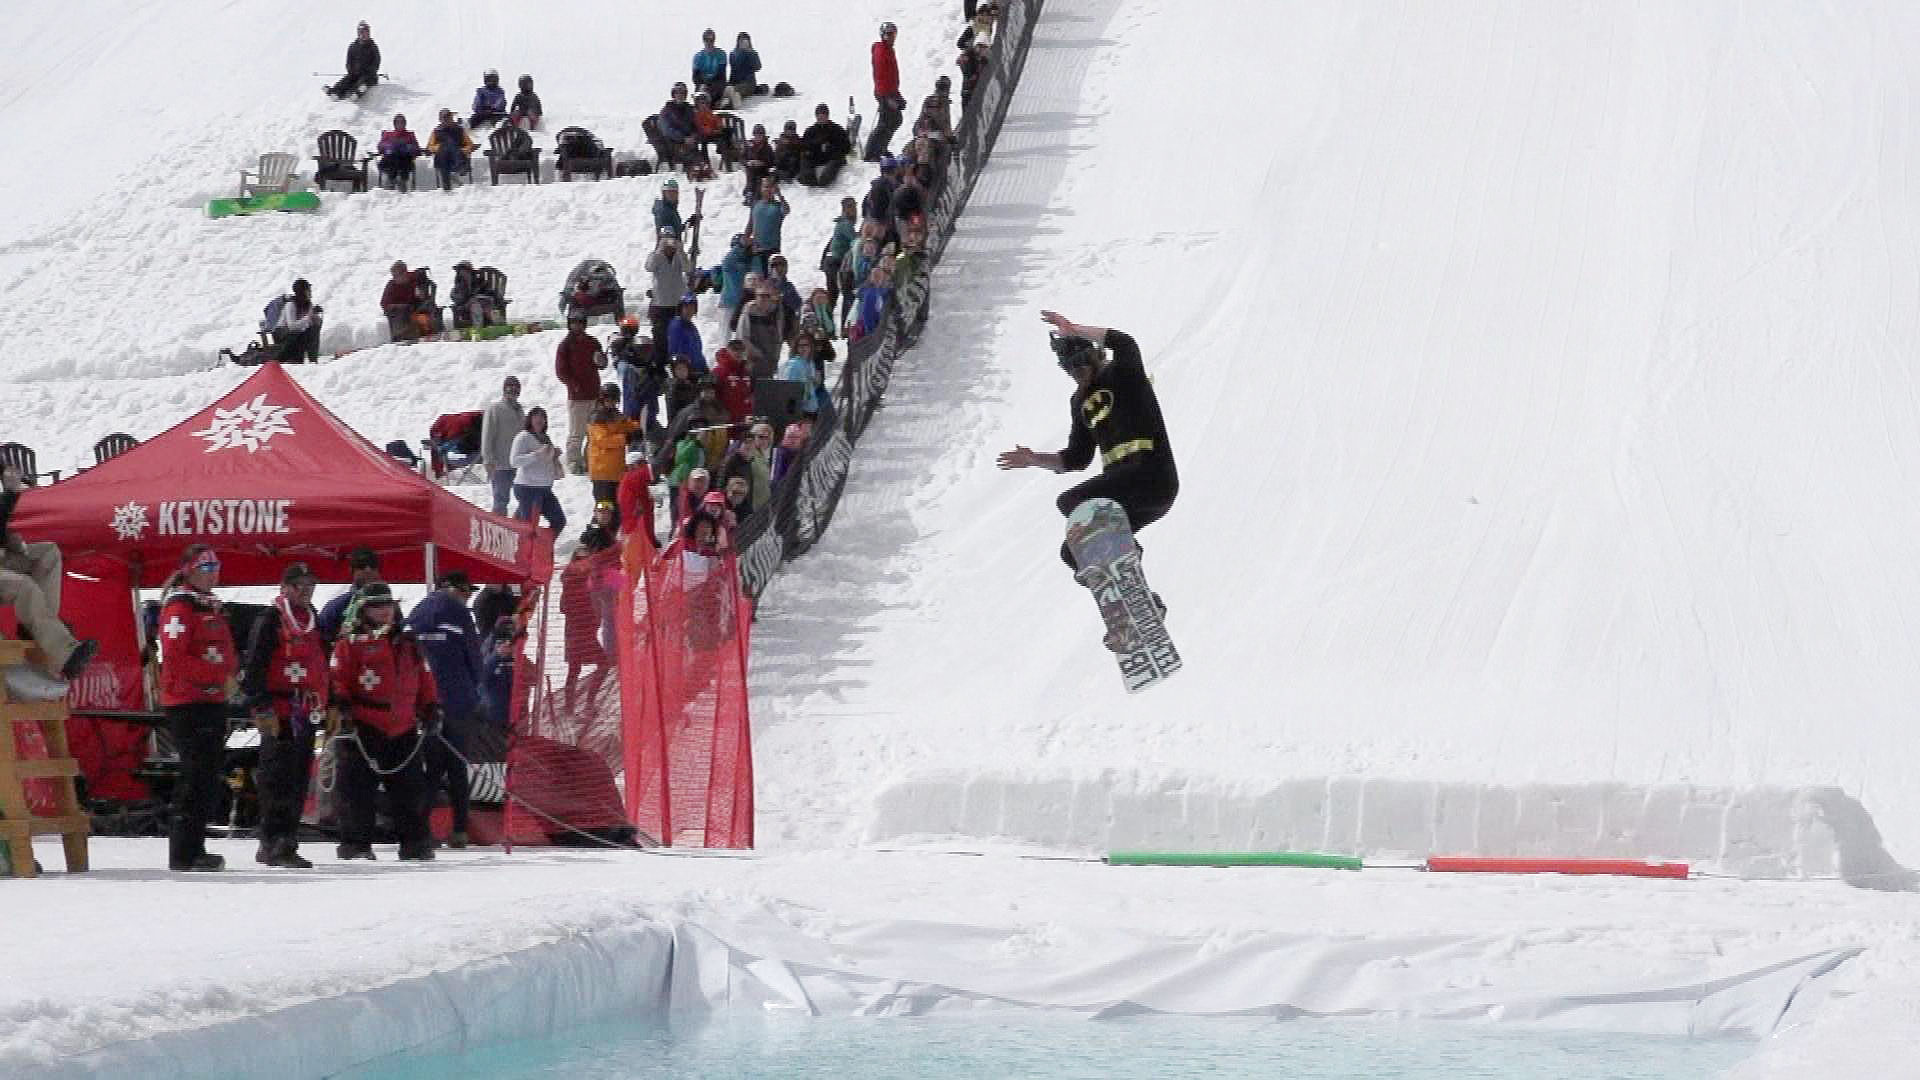 The Slush Cup at Keystone on closing day in 2015.  (credit: CBS)